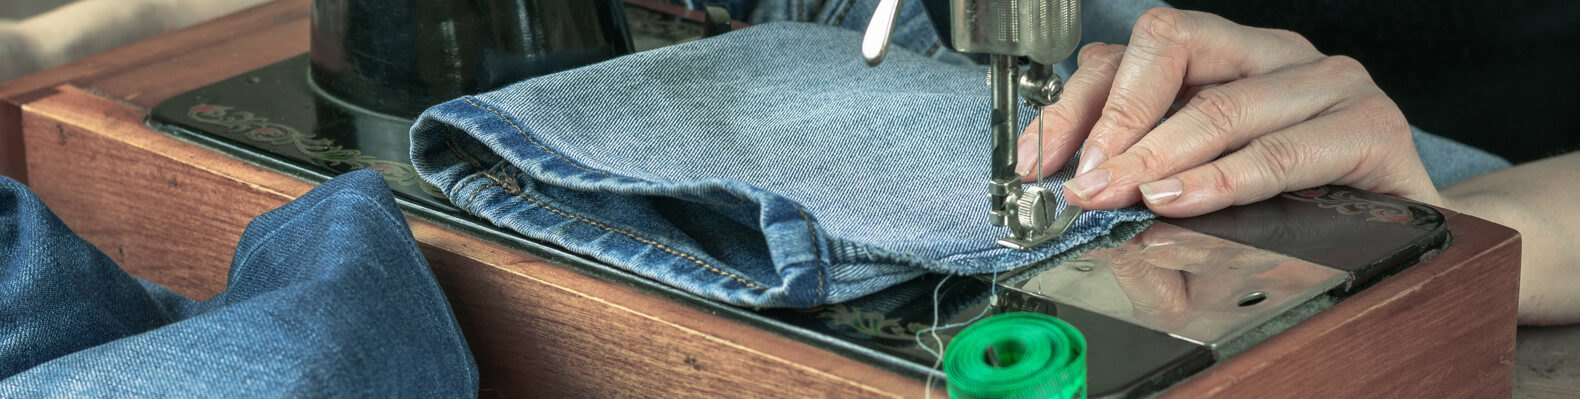 person sewing denim pants on a sewing machine